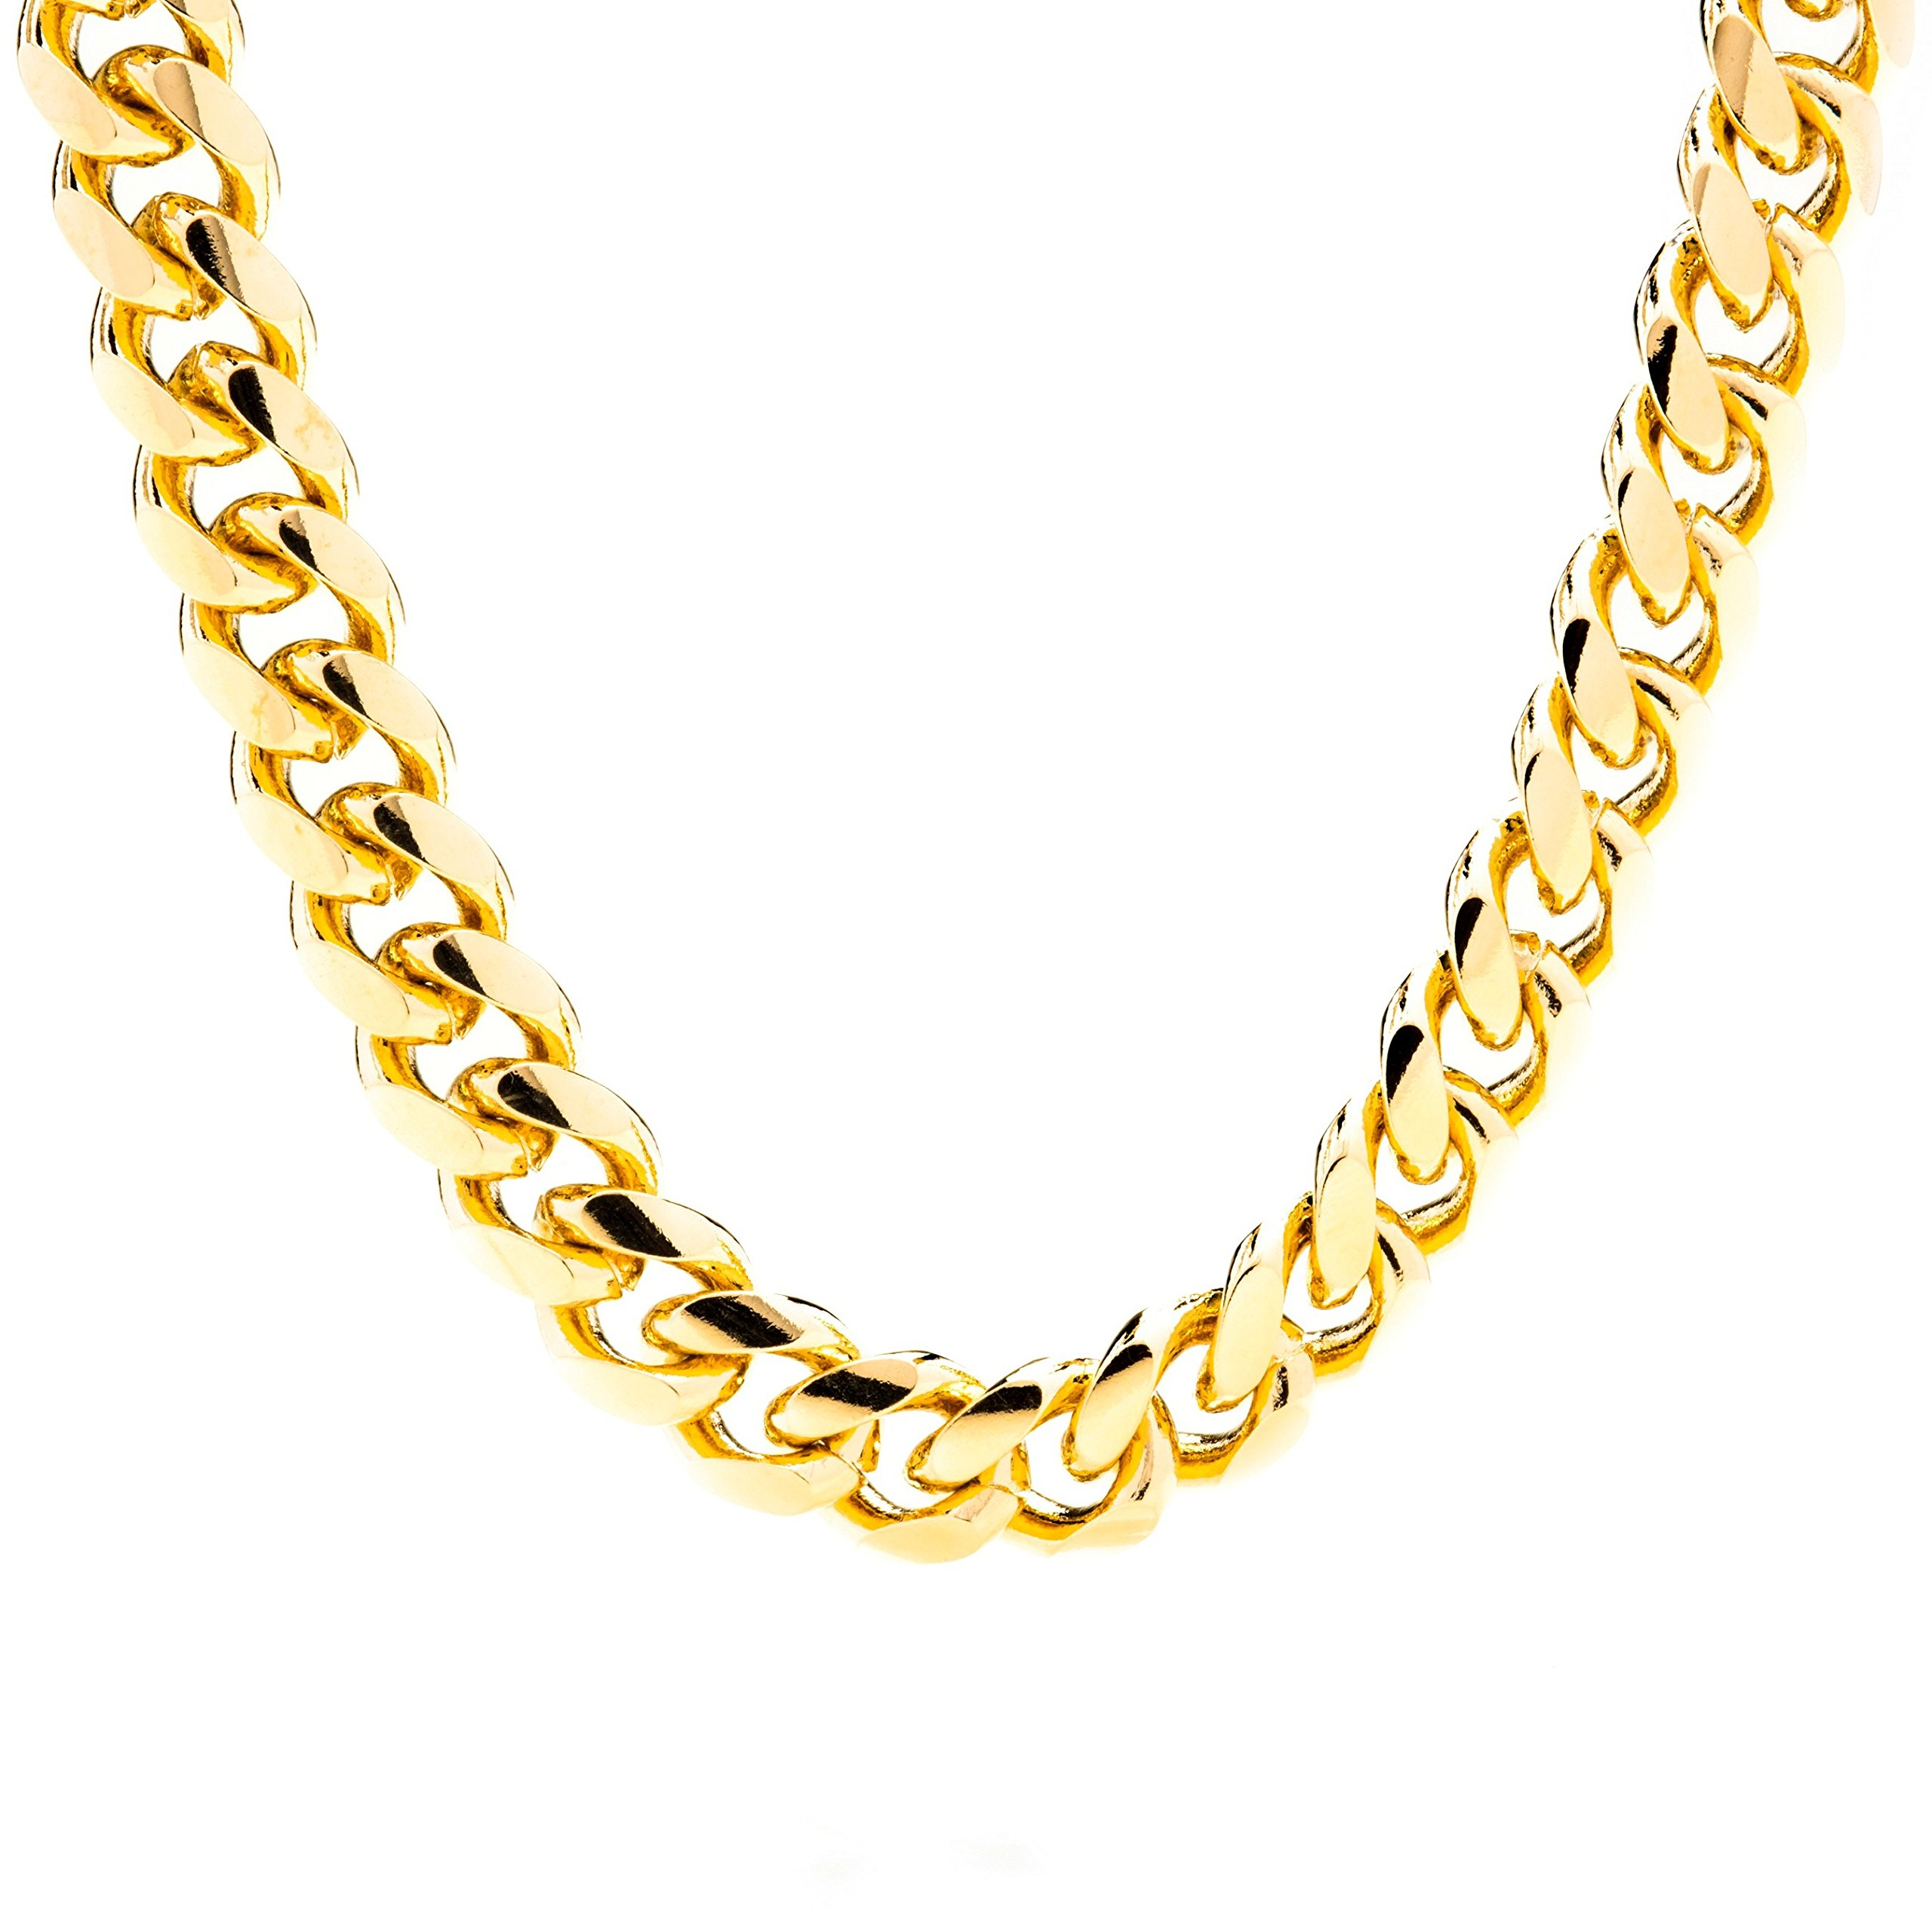 Gold Cuban Link Chain 11MM, Round, 24K Overlay Premium Fashion Jewelry Necklaces, Resists Tarnishing, GUARANTEED FOR LIFE, 30 Inches by Lifetime Jewelry